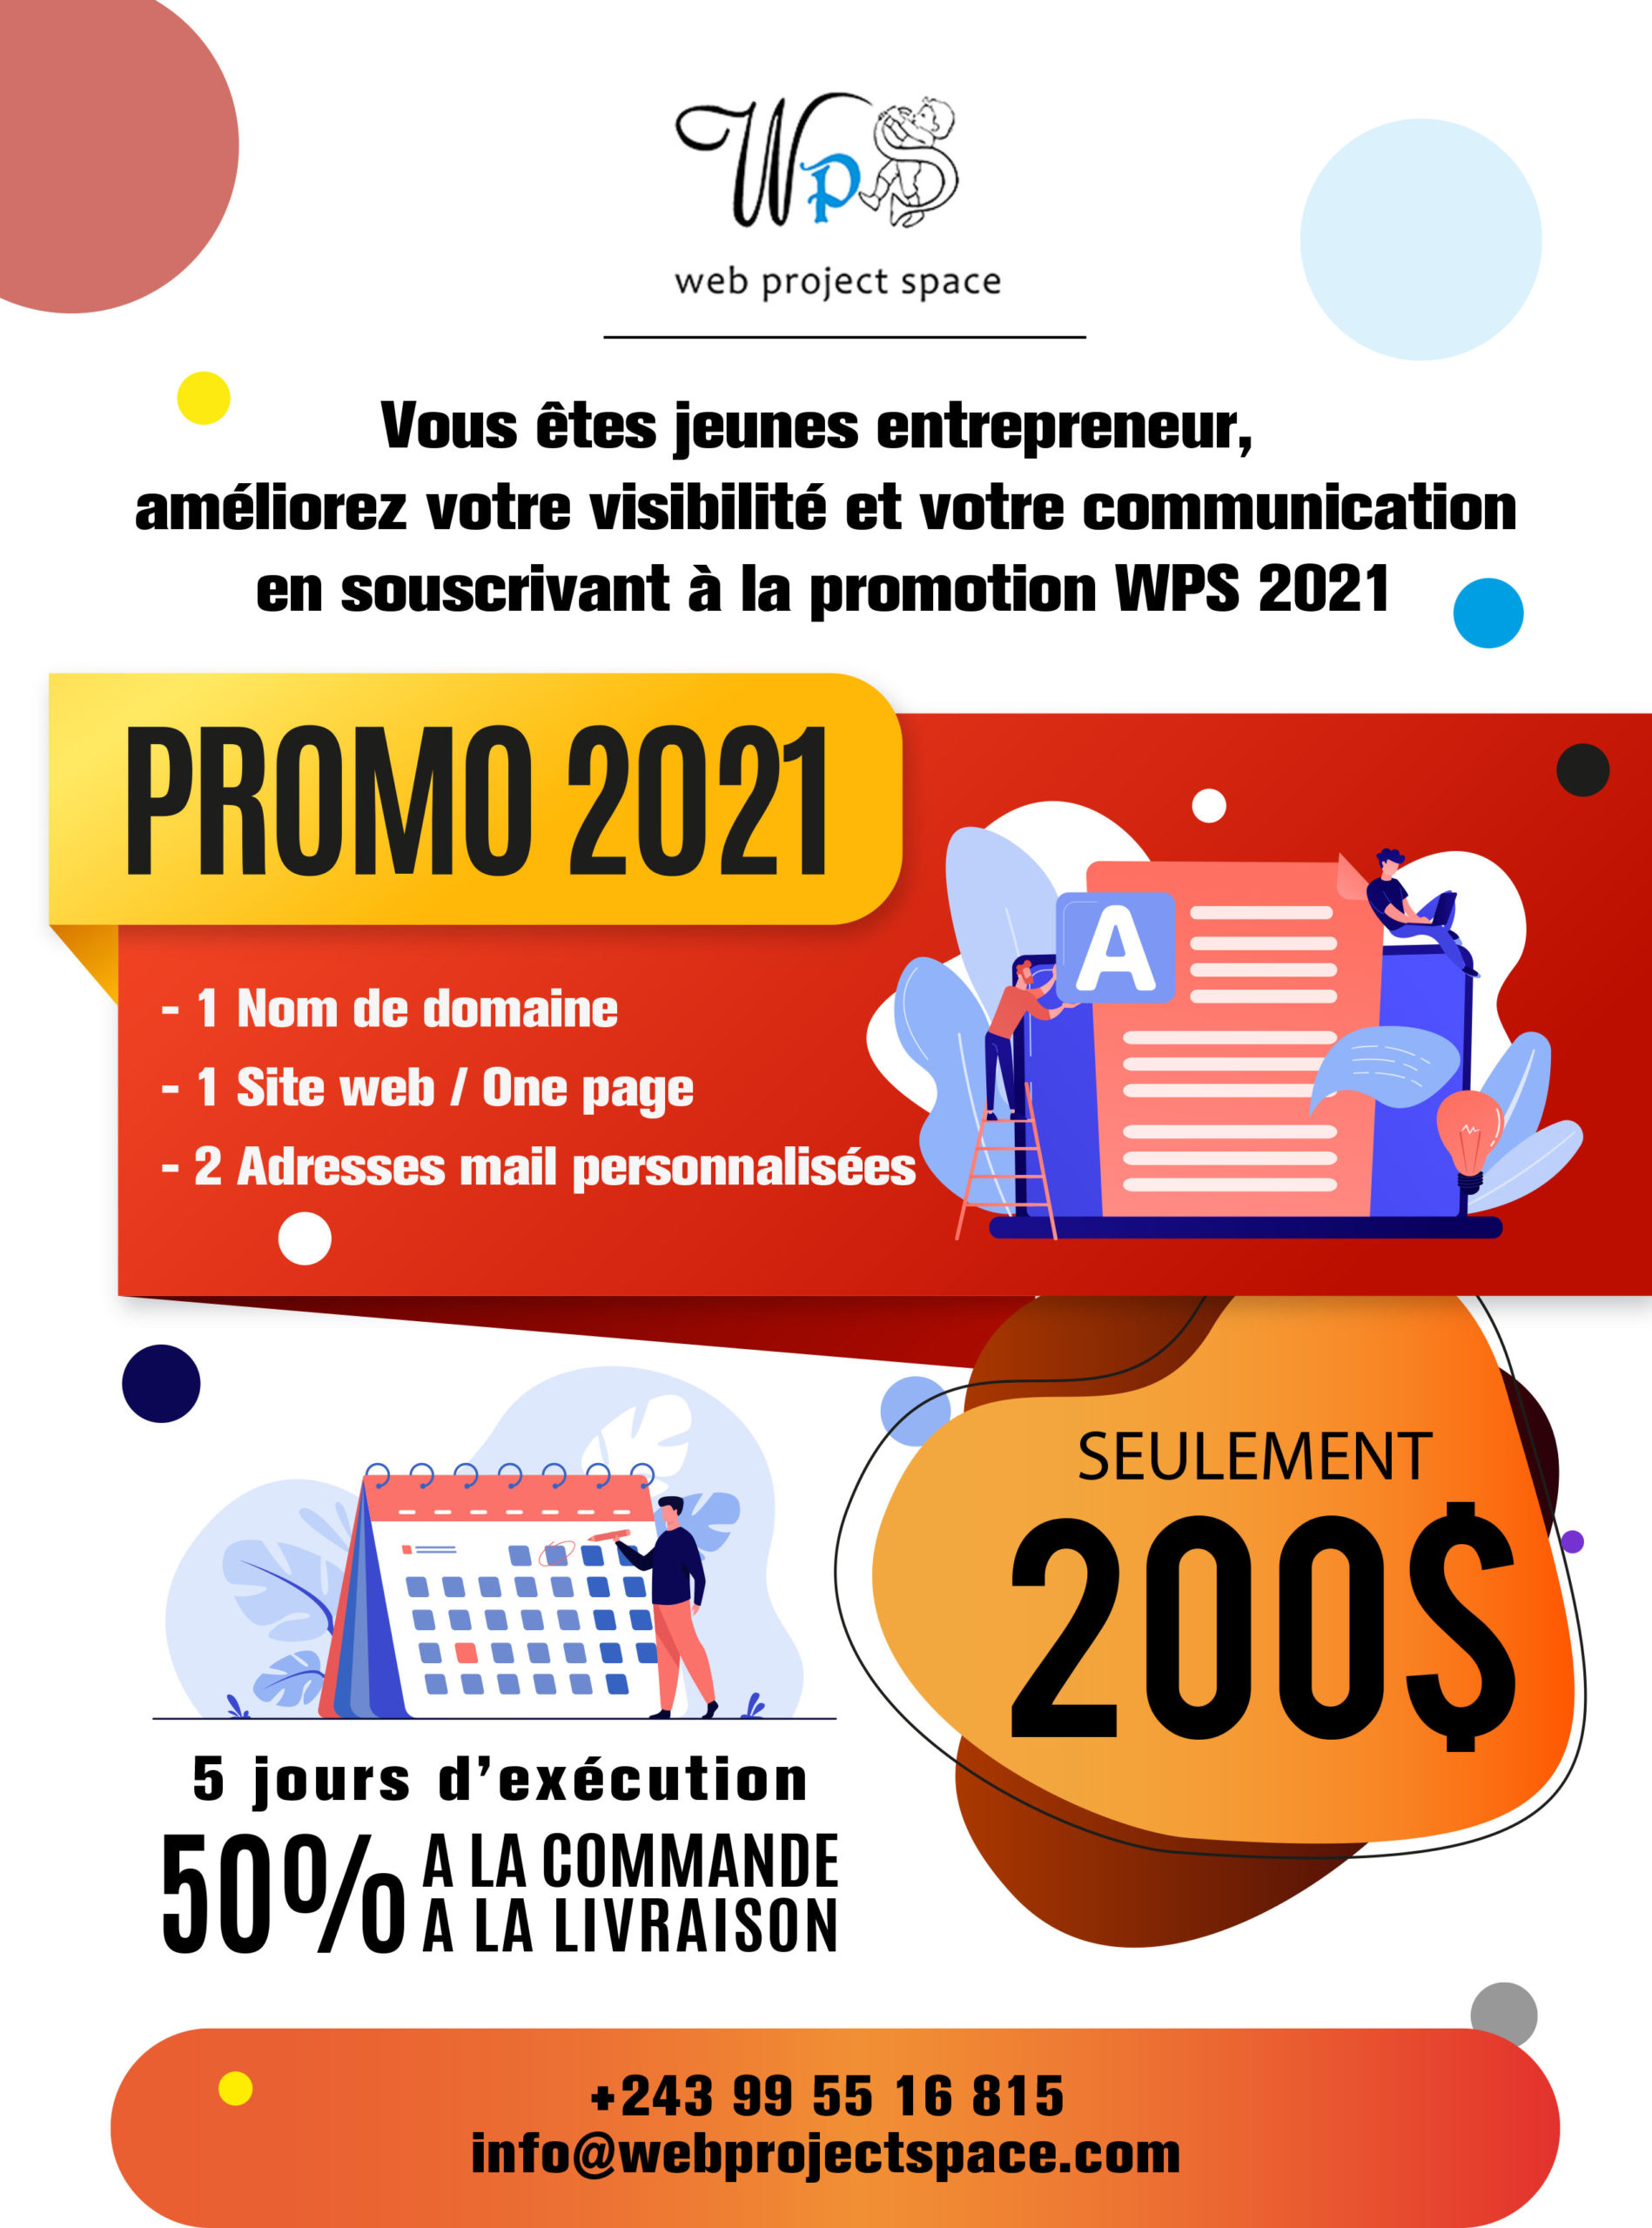 PROMO 2021 Web Project Space